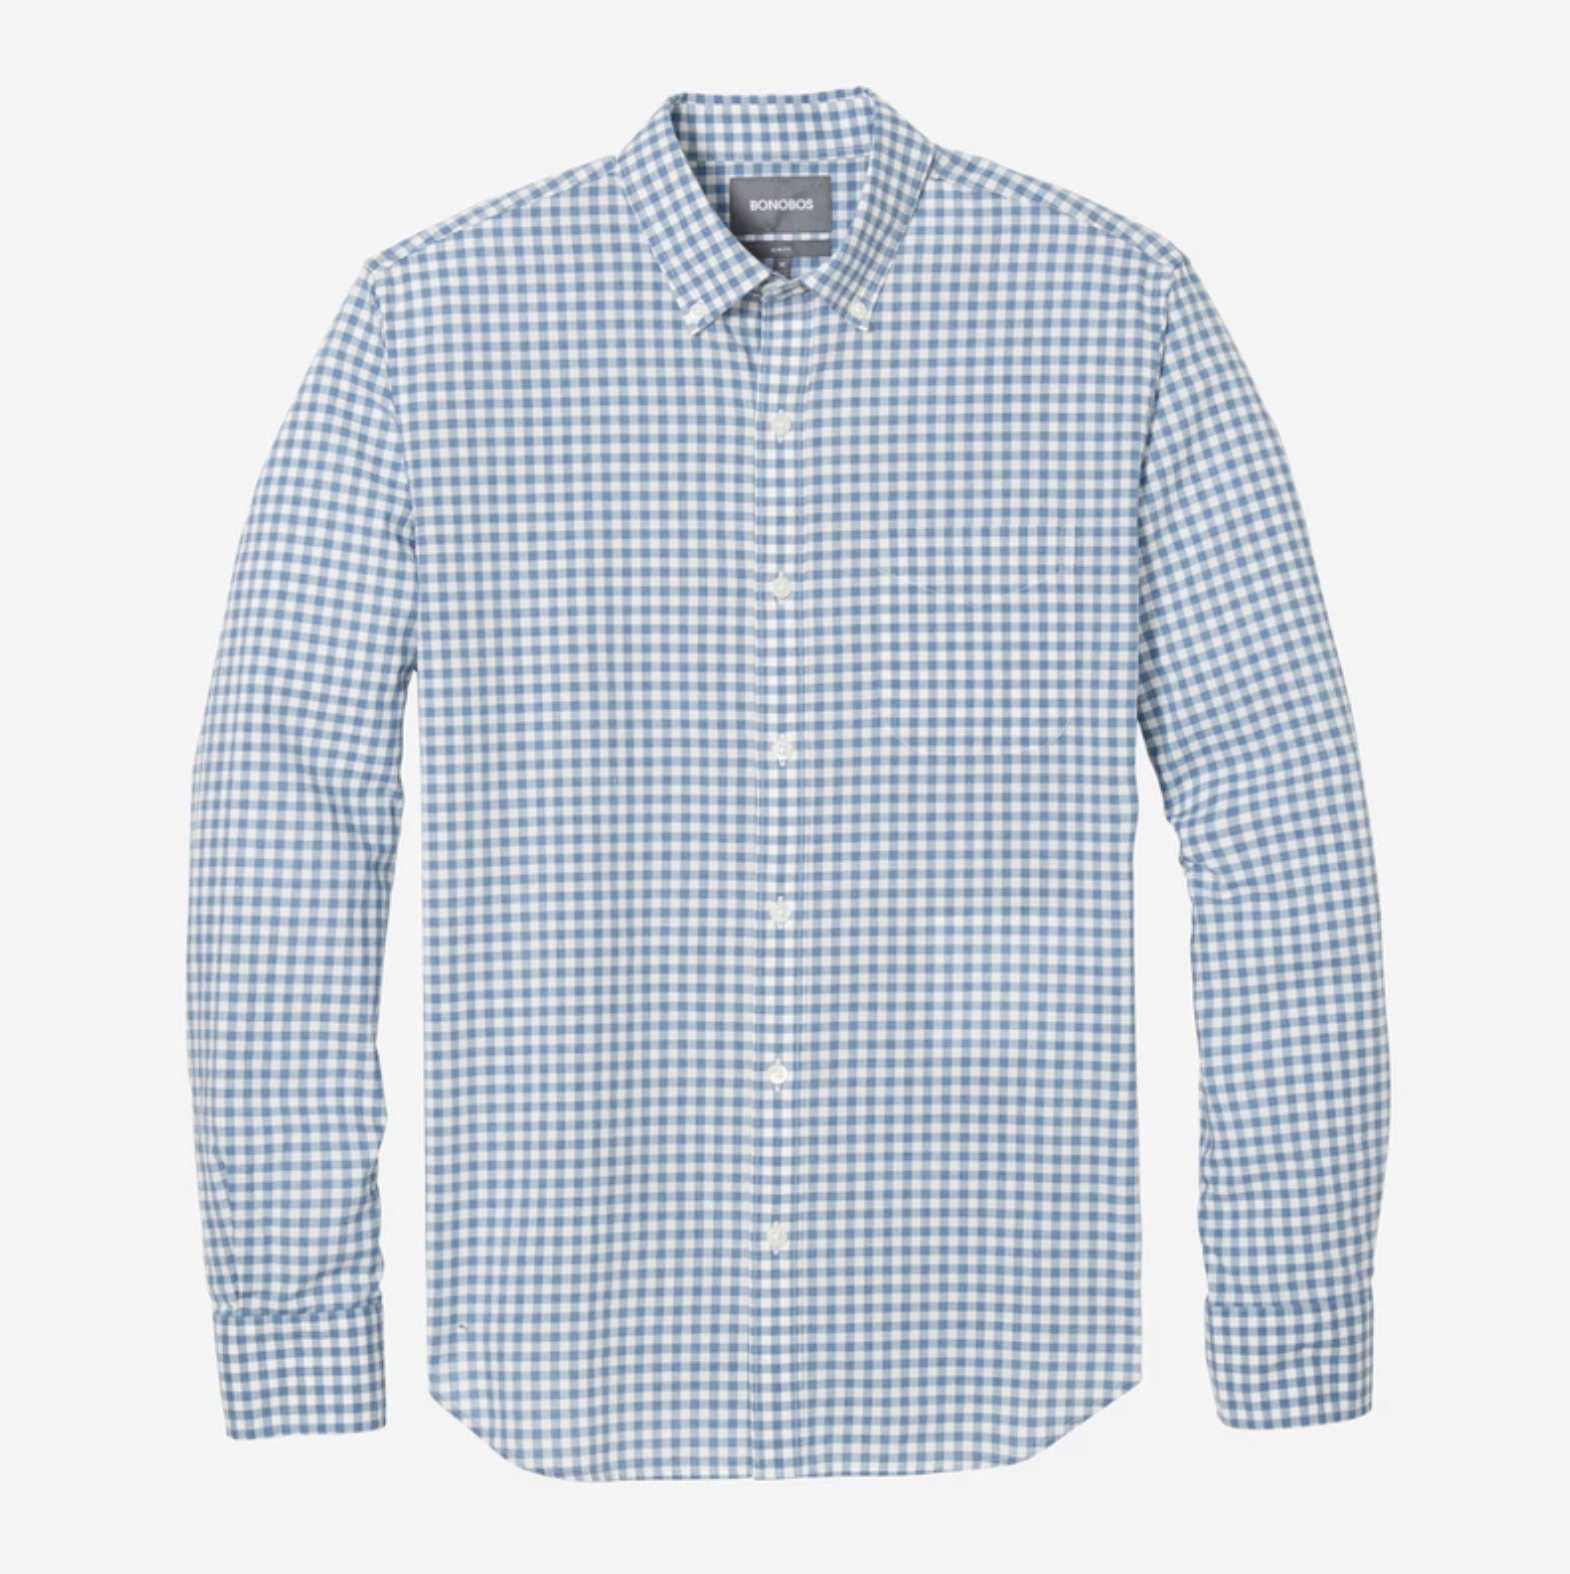 Dress to impress in this blue gingham shirt, perfect for any business casual workplace. Practically everyone in the office has this shirt, so there's no way Jared the admin will assume that paper bag you're holding is his Sweetgreen quinoa bowl, again.